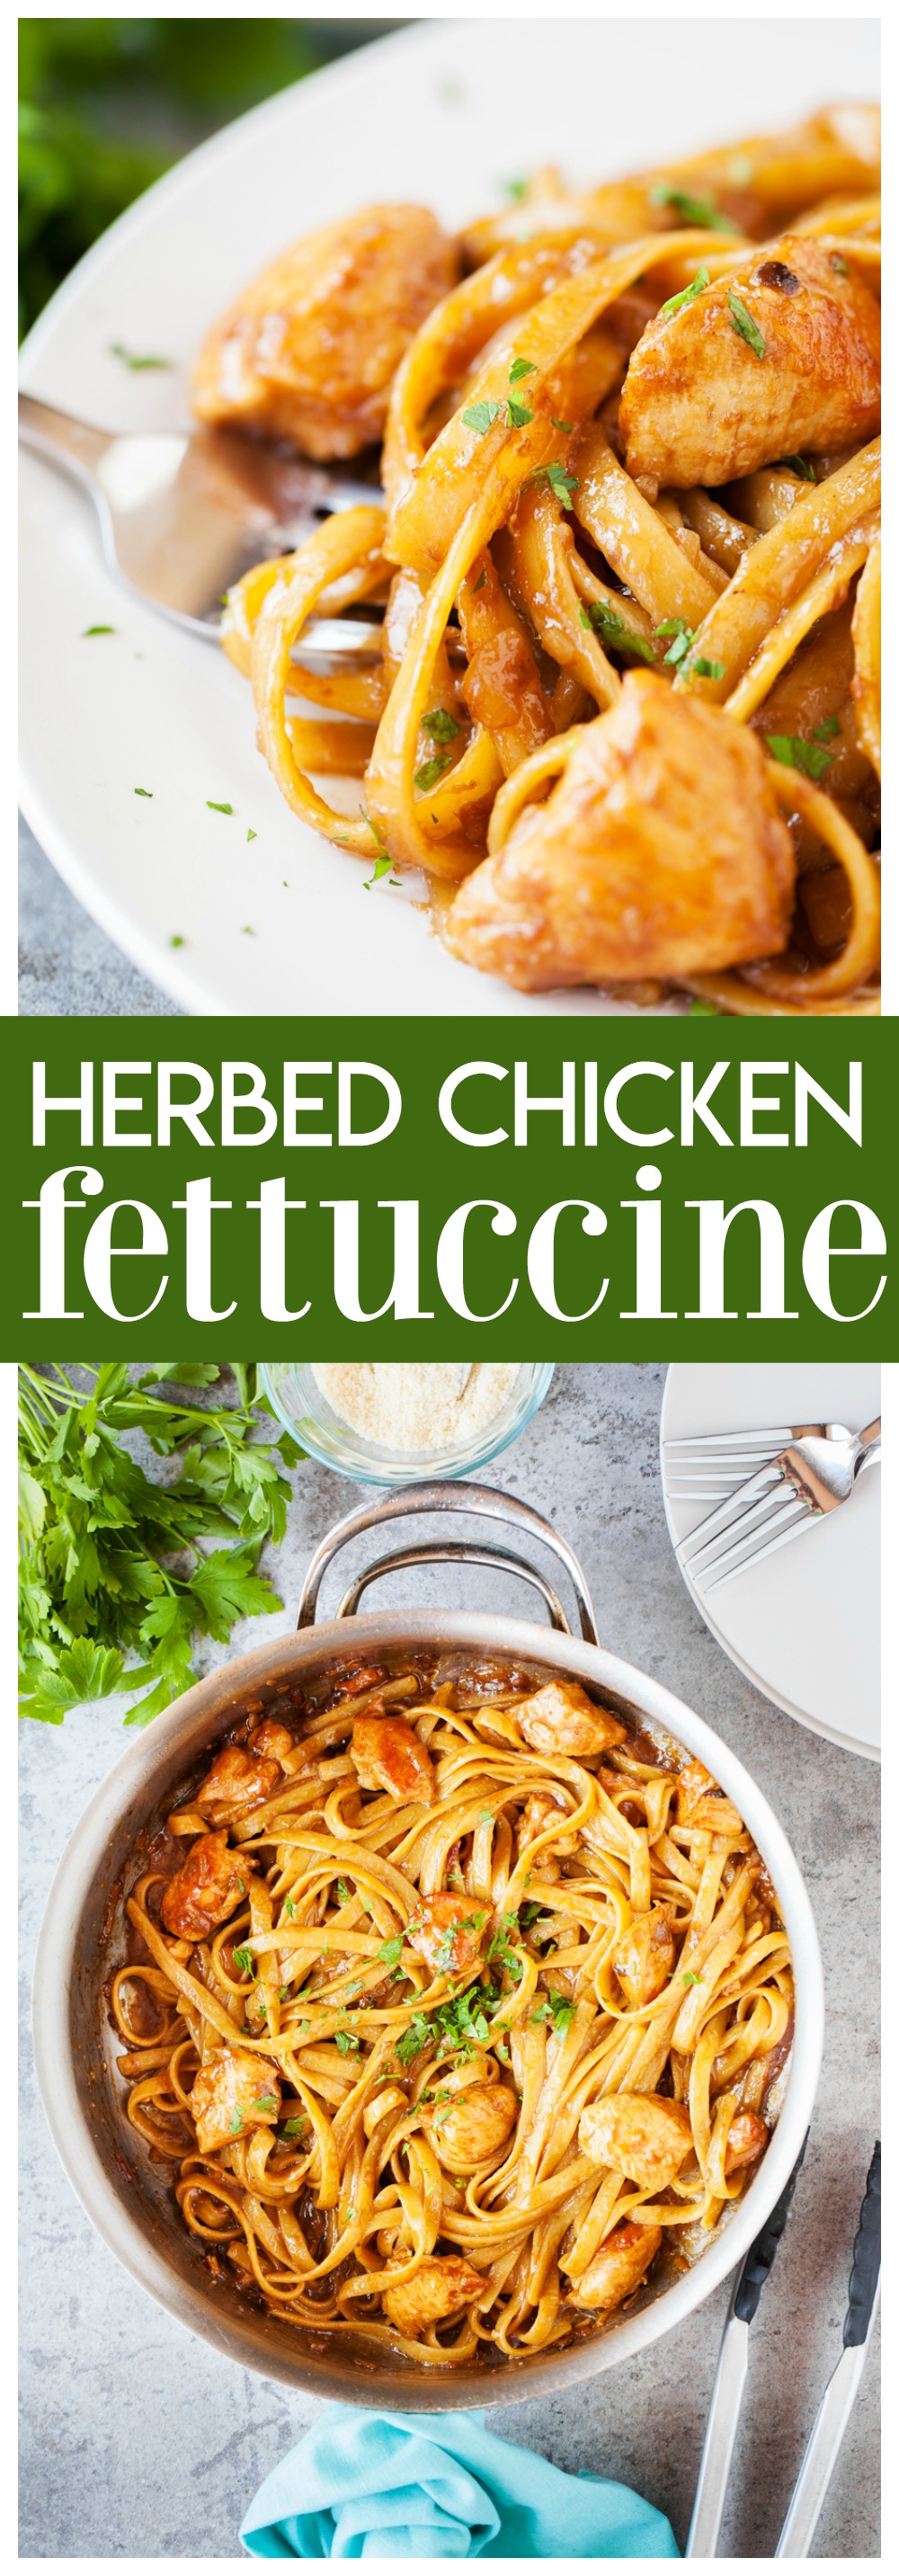 This Herbed Chicken Fettuccine is a delicious weeknight meal! You only need a few simple ingredients and about 30 minutes and dinner will be on the table!